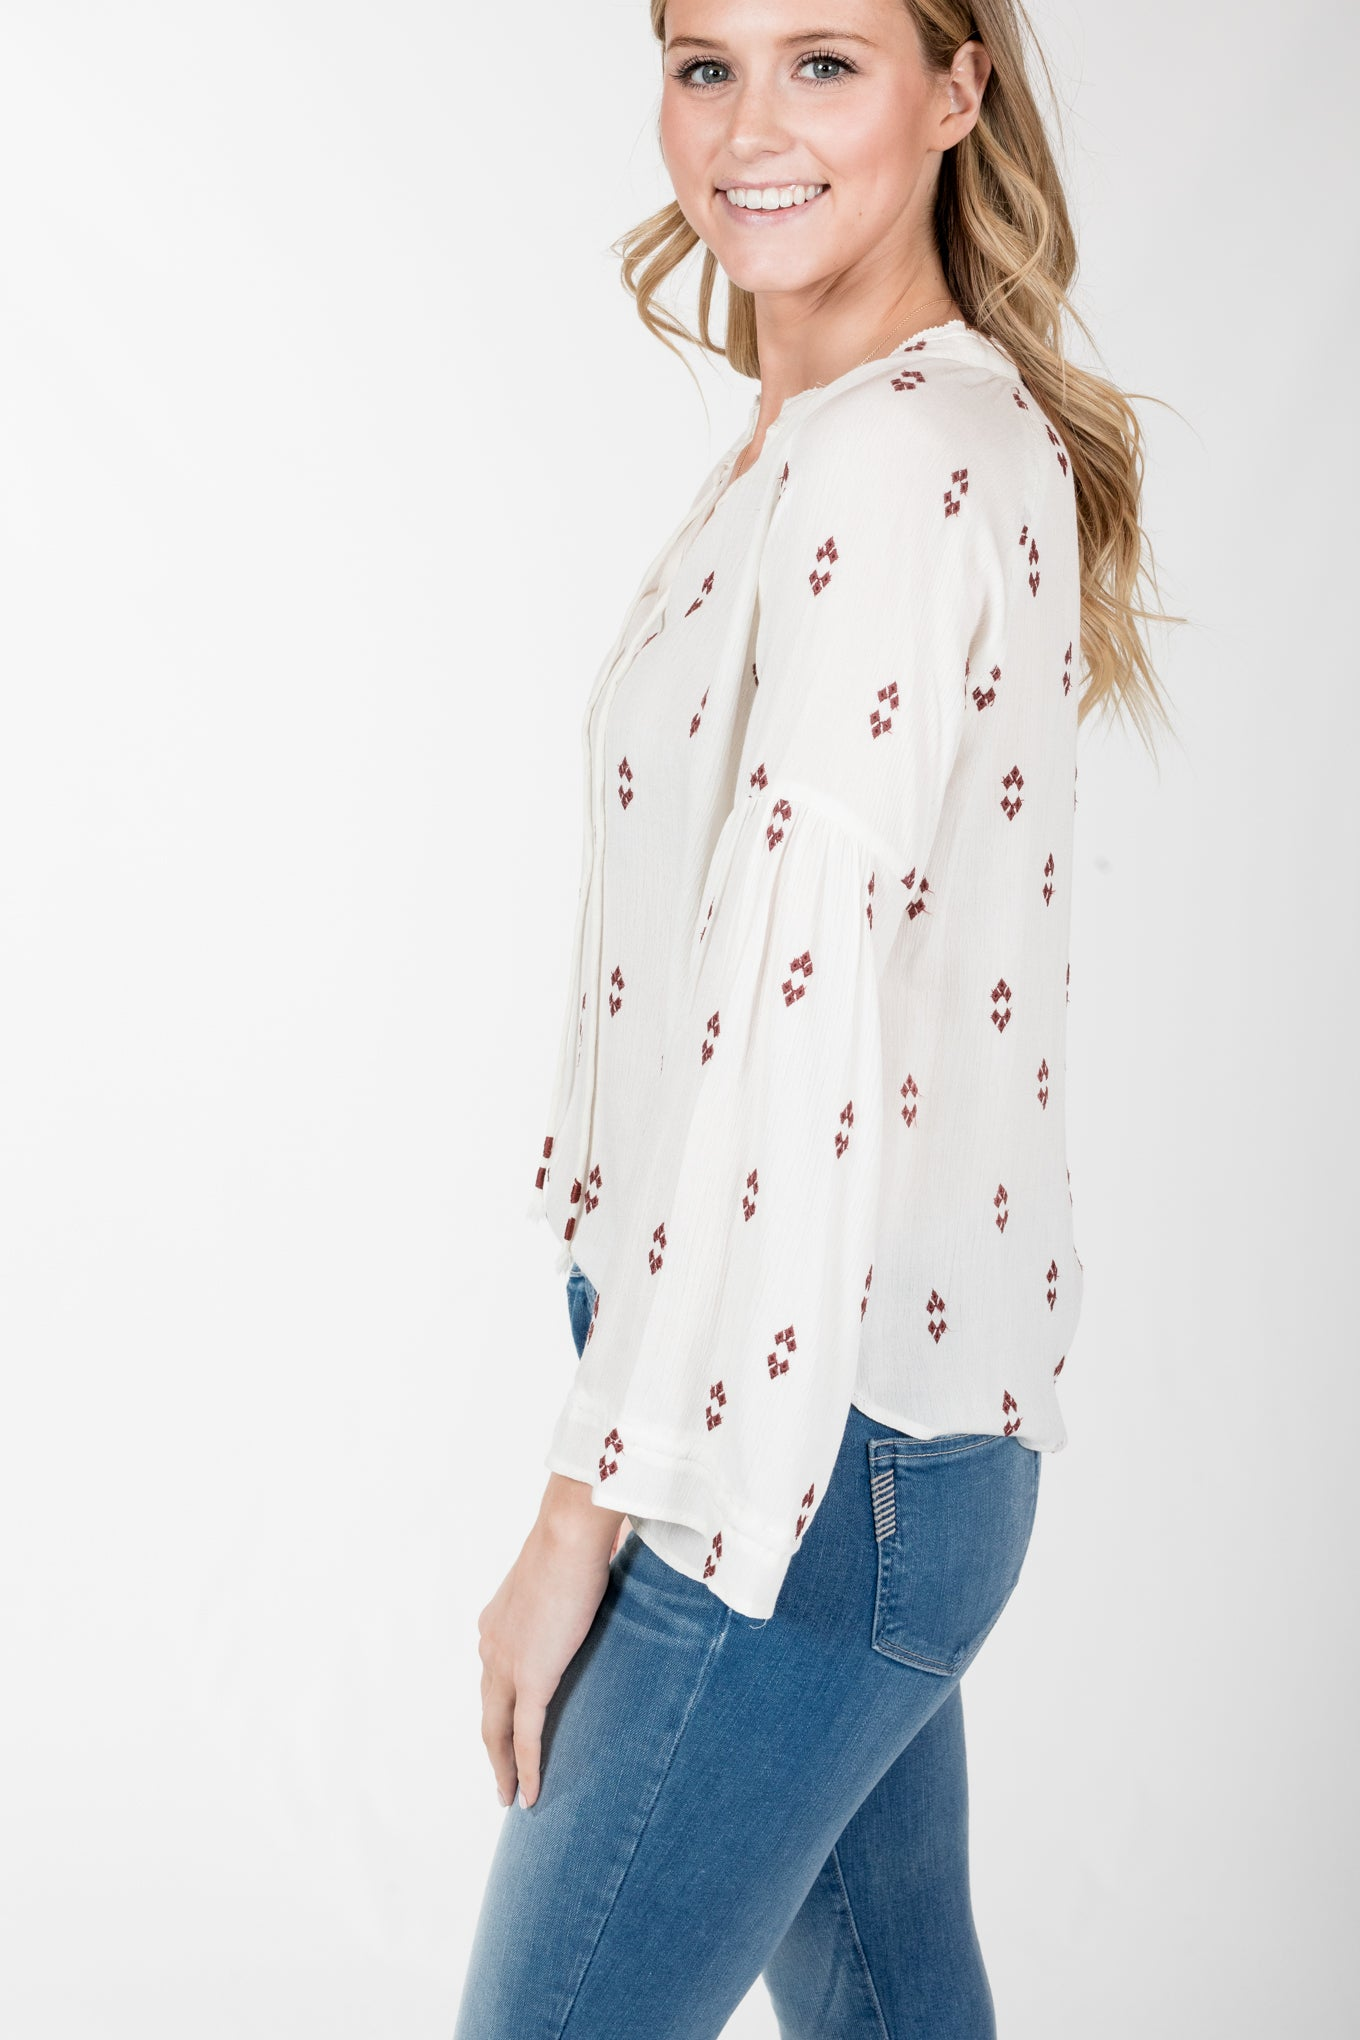 Gentle Fawn.Sonya Top-Vanilla